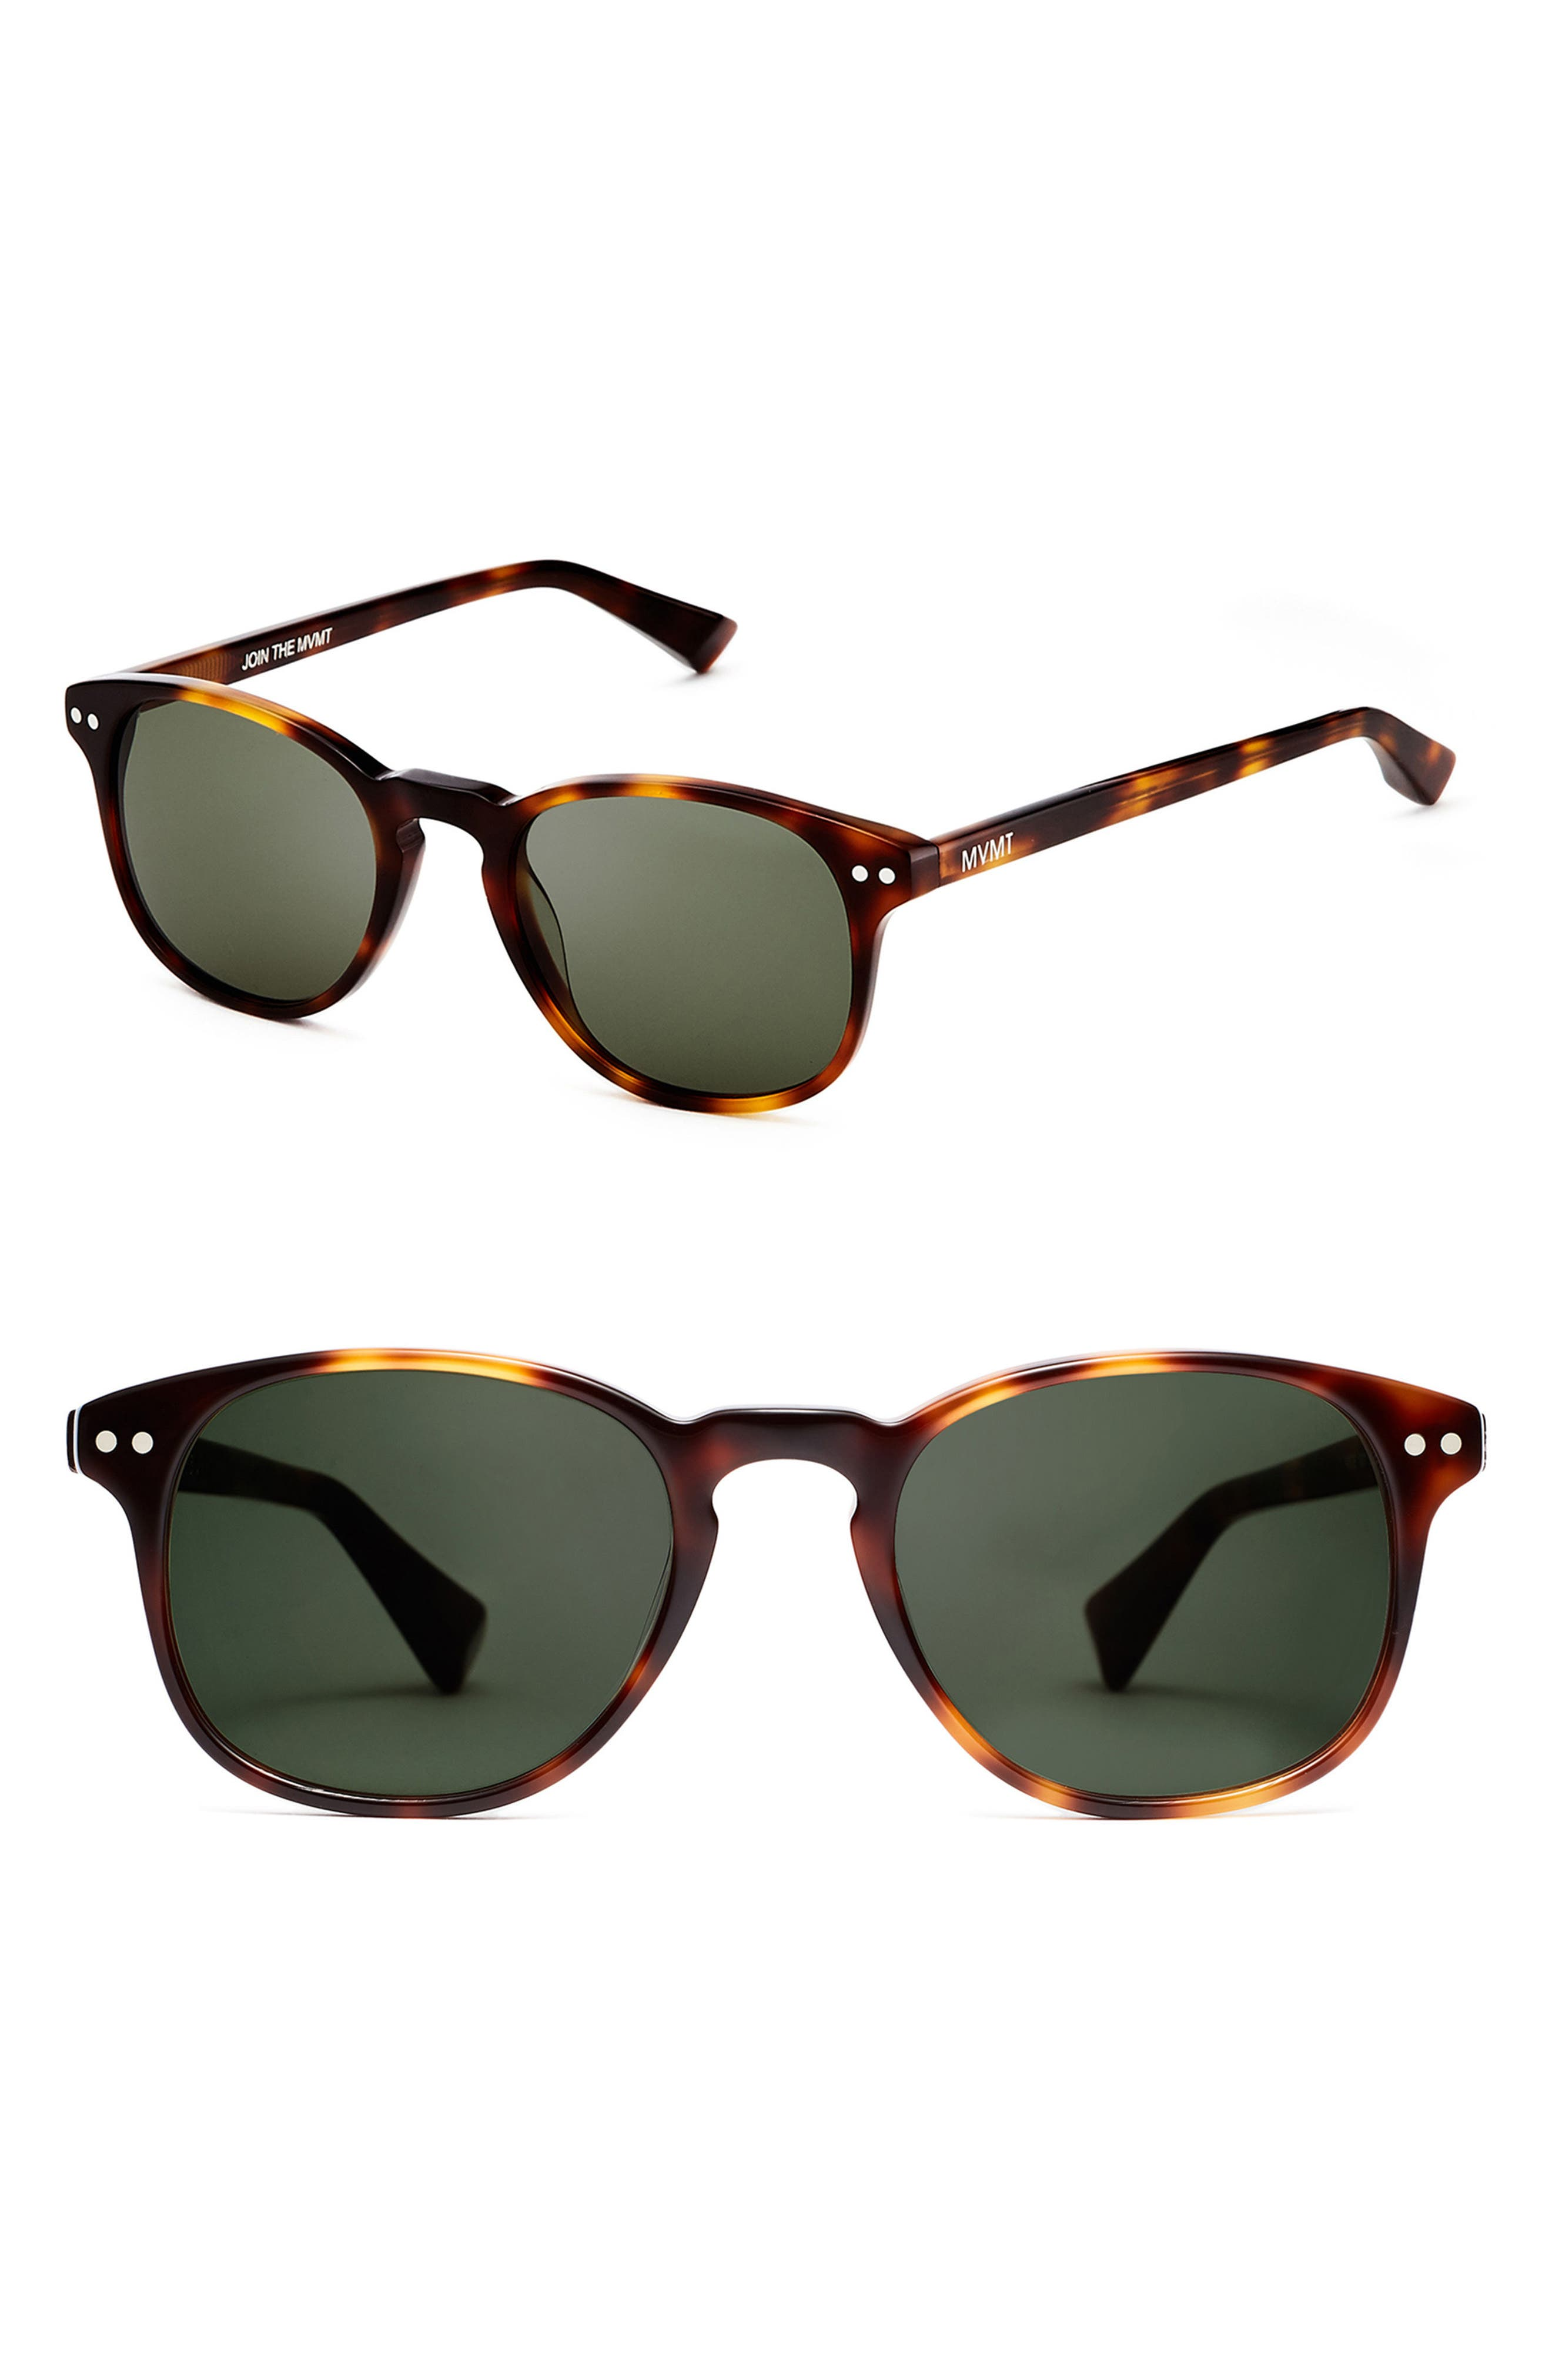 Hyde 57mm Polarized Round Sunglasses,                         Main,                         color, Whiskey Tortoise